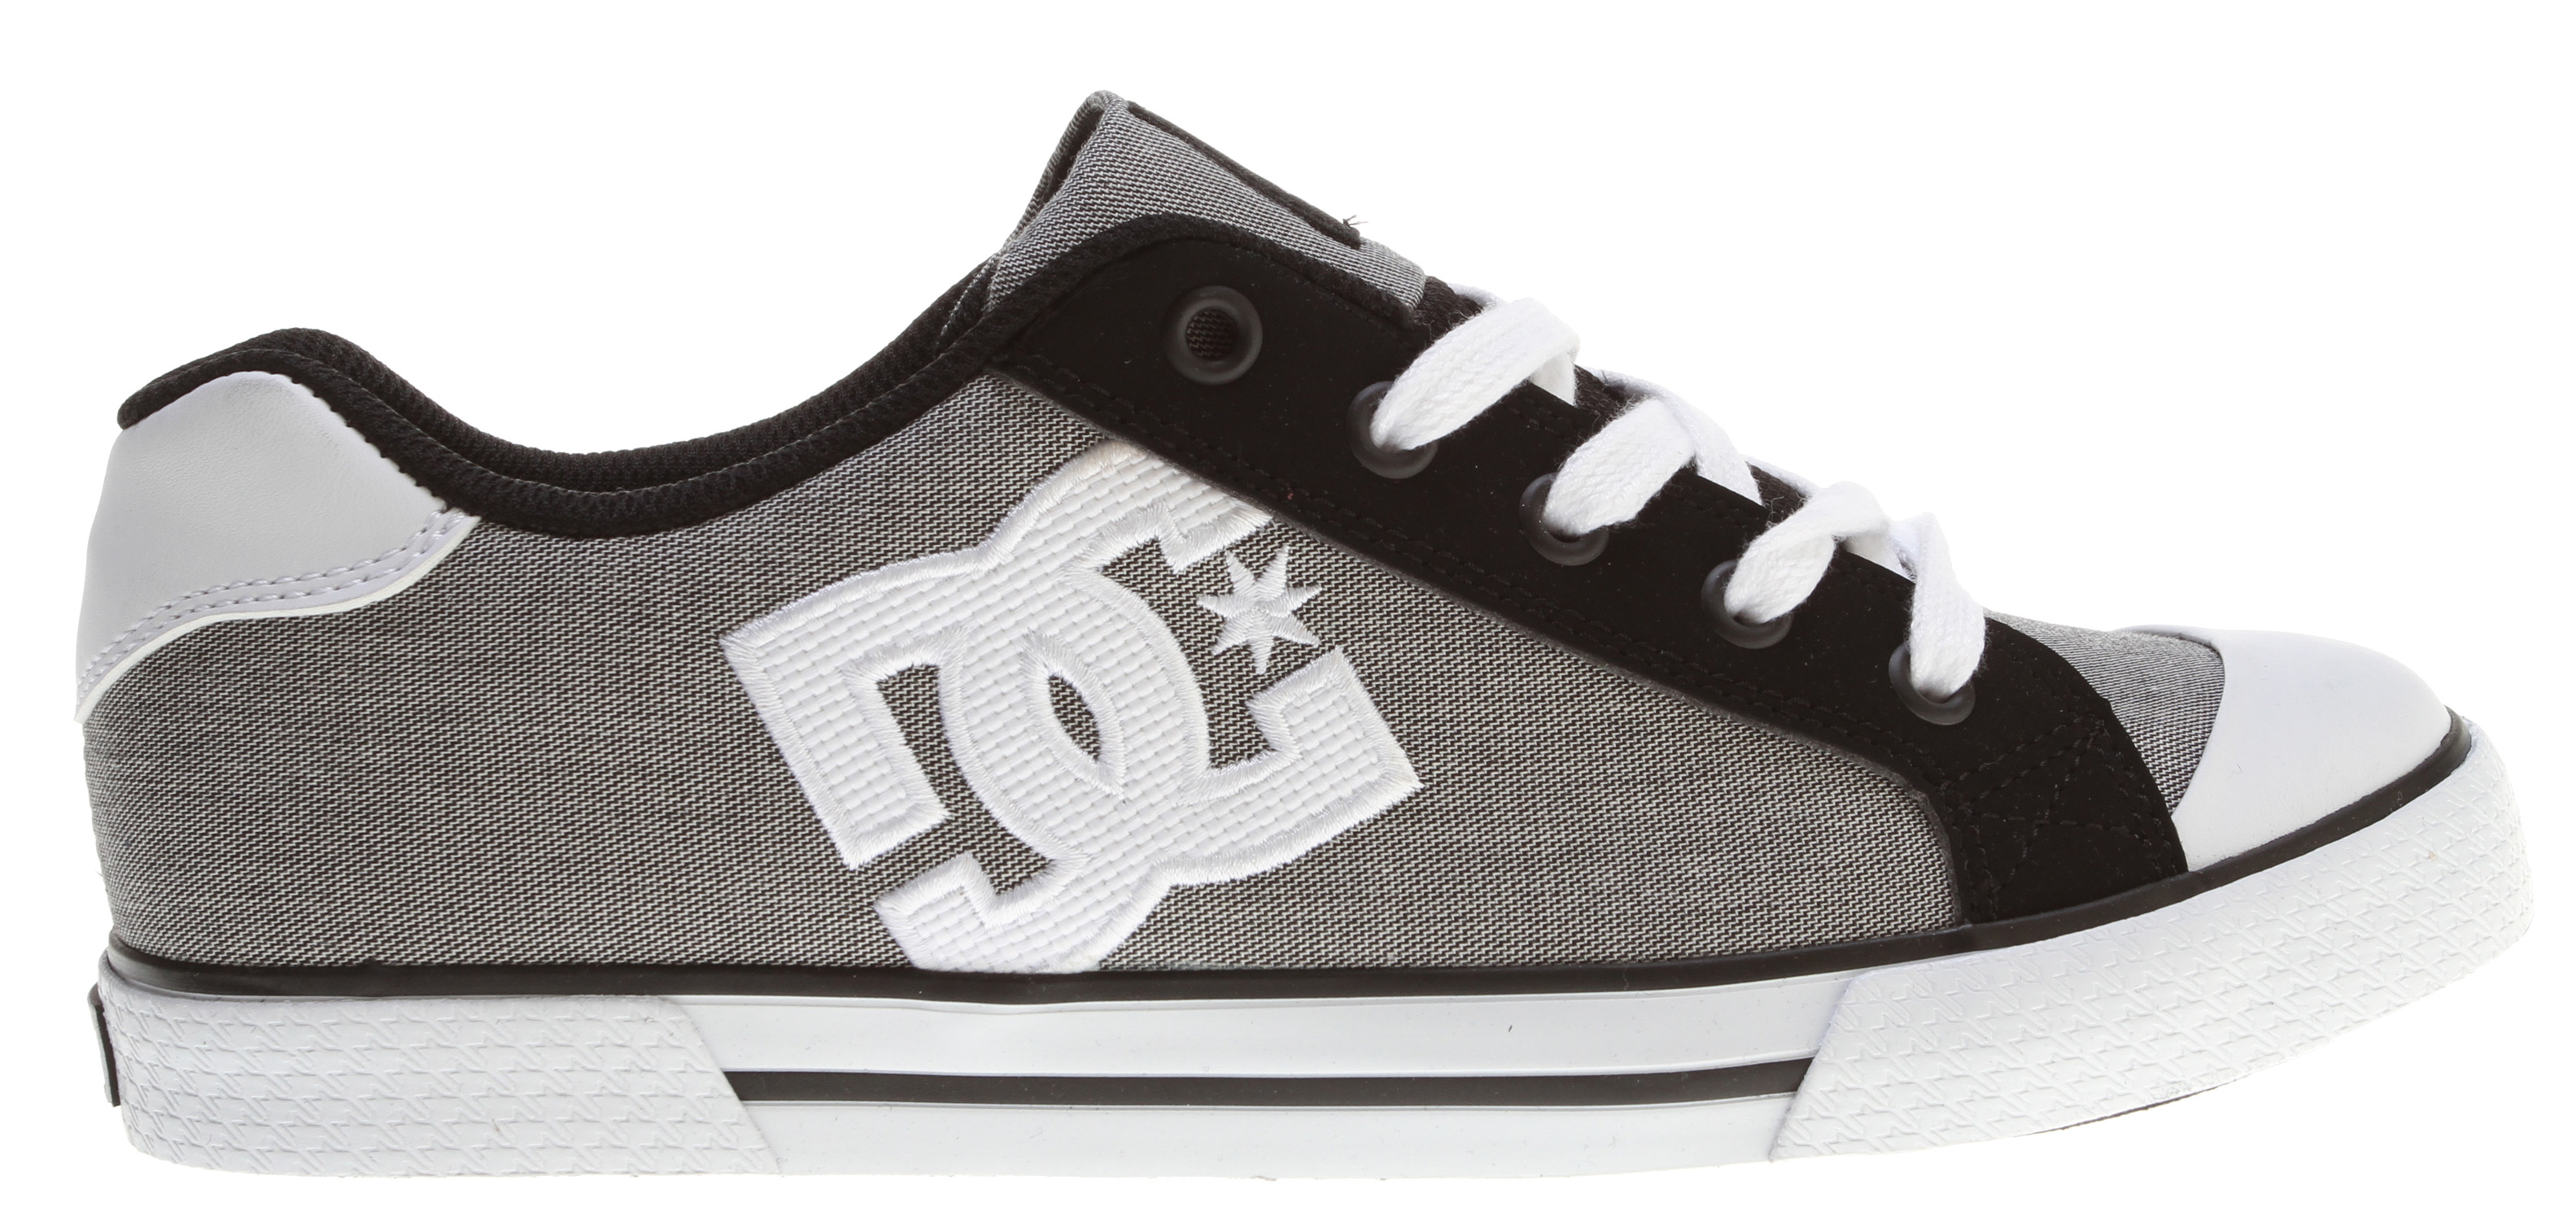 "Skateboard Key Features of the DC Chelsea Skate Shoes: Textile And Suede Or Action Leather Upper-Vent Holes For Ventilation Metal Eyelets Vulcanized Construction DC's Trademarked ""Pill Pattern"" Bottom. - $38.95"